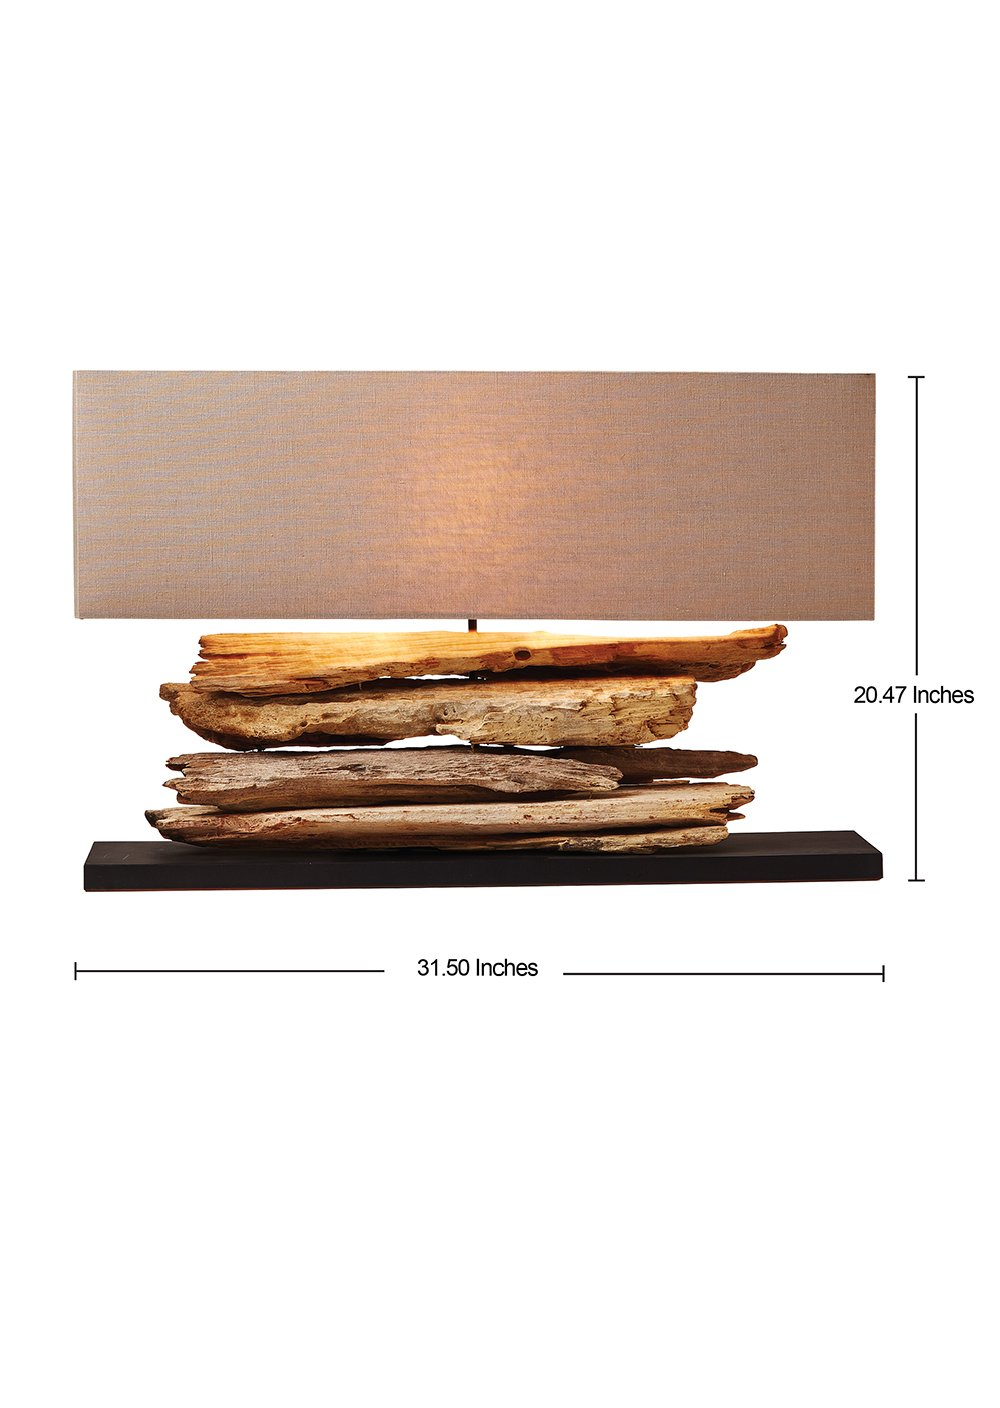 O'THENTIQUE Driftwood Branch Table Lamp | Rustic Salvaged Natural Wood | Brown Shade Perfect as Entry Table Lamp, Sofa Table Lamp for Beach House, Cottage, Cabin, Bedroom, Living Room Decoration by O'THENTIQUE